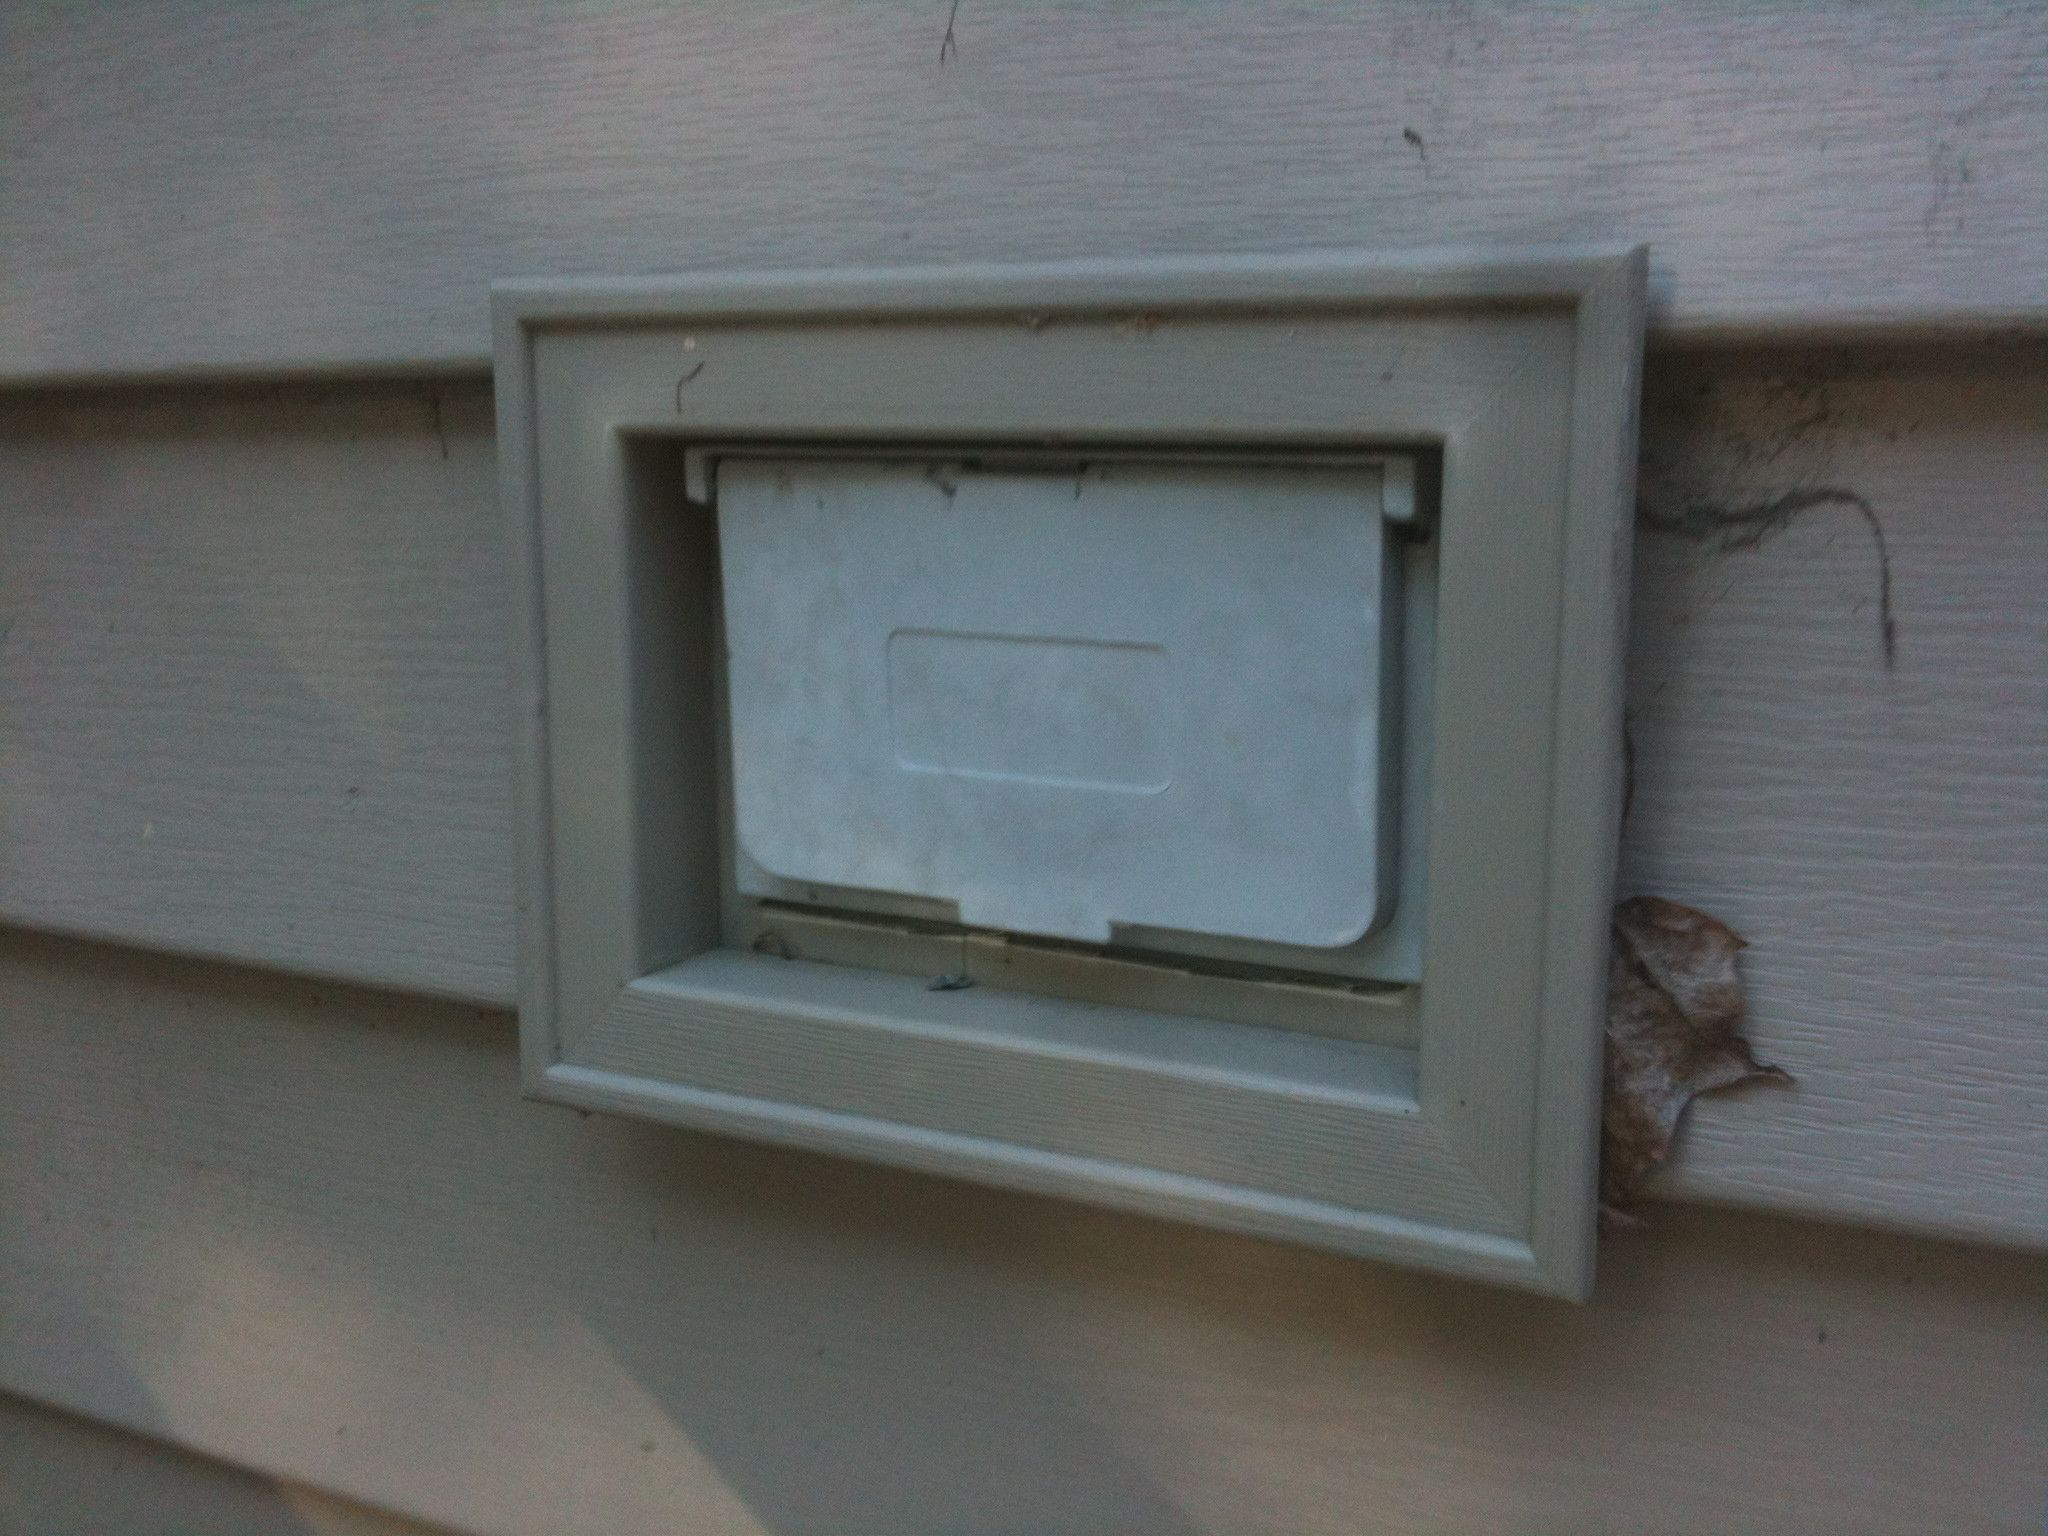 How To Attach Box Through Vinyl Siding And Use The J Box